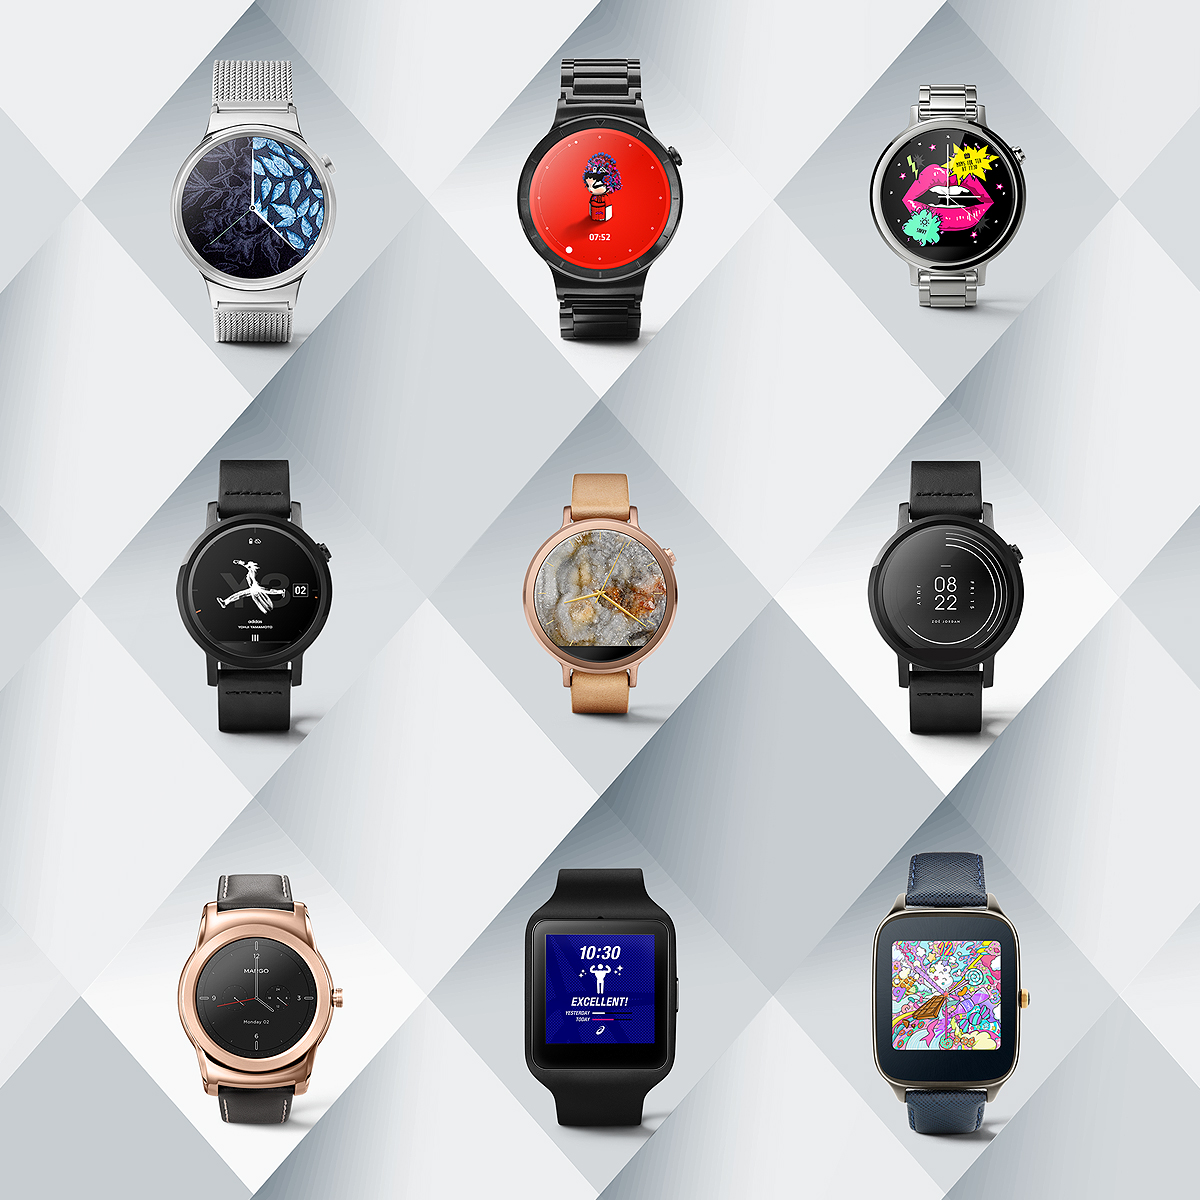 Designer android wear watchface - Android Wear Dress Things Up With New Designer Watch Faces